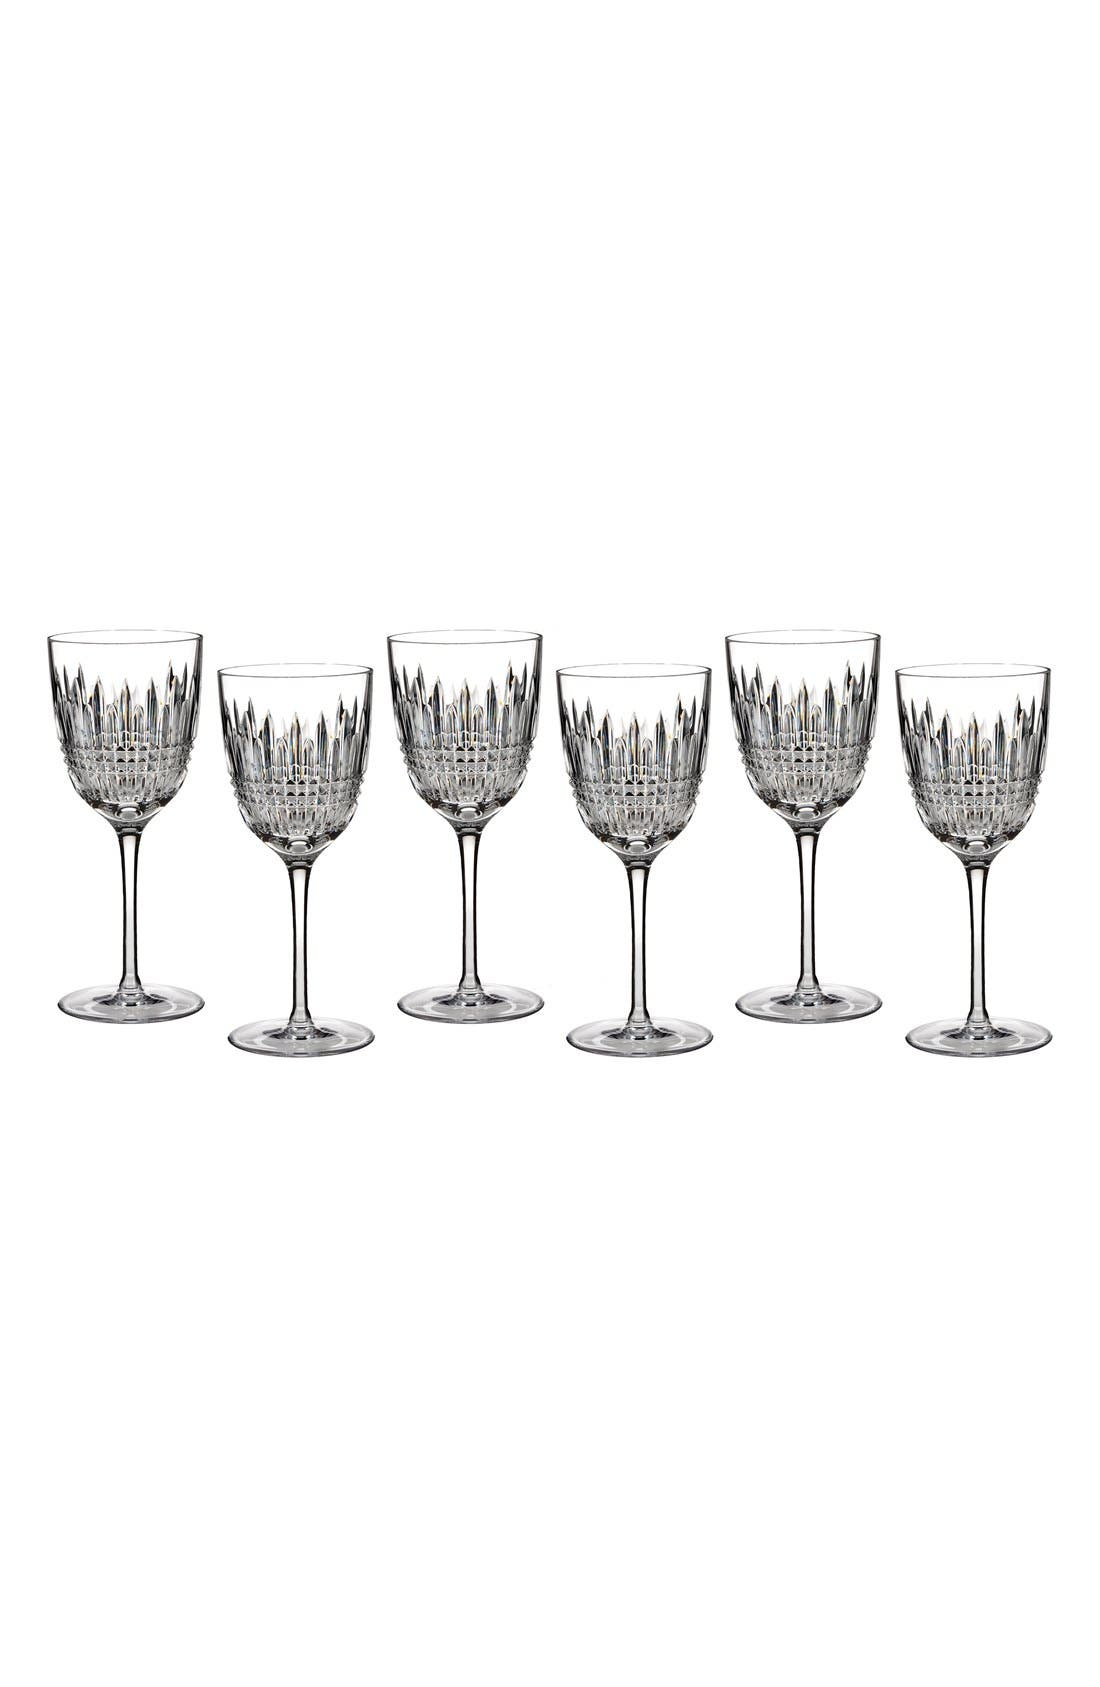 Alternate Image 1 Selected - Waterford 'Lismore Diamond' Lead Crystal Goblets (Set of 6)